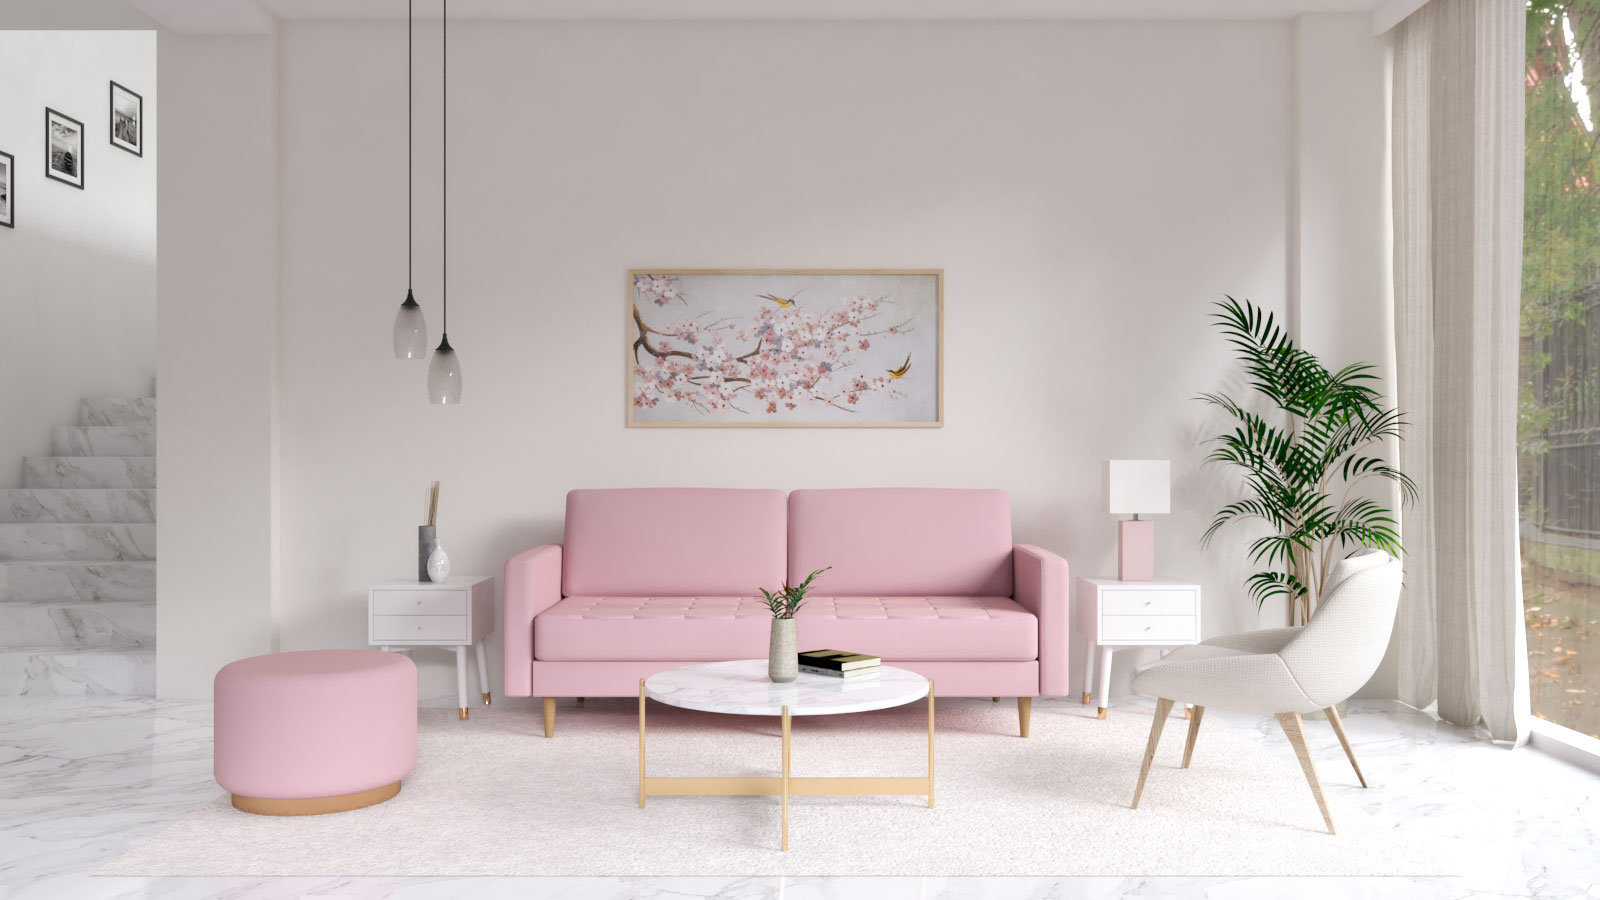 Ivory white wall with pink furniture